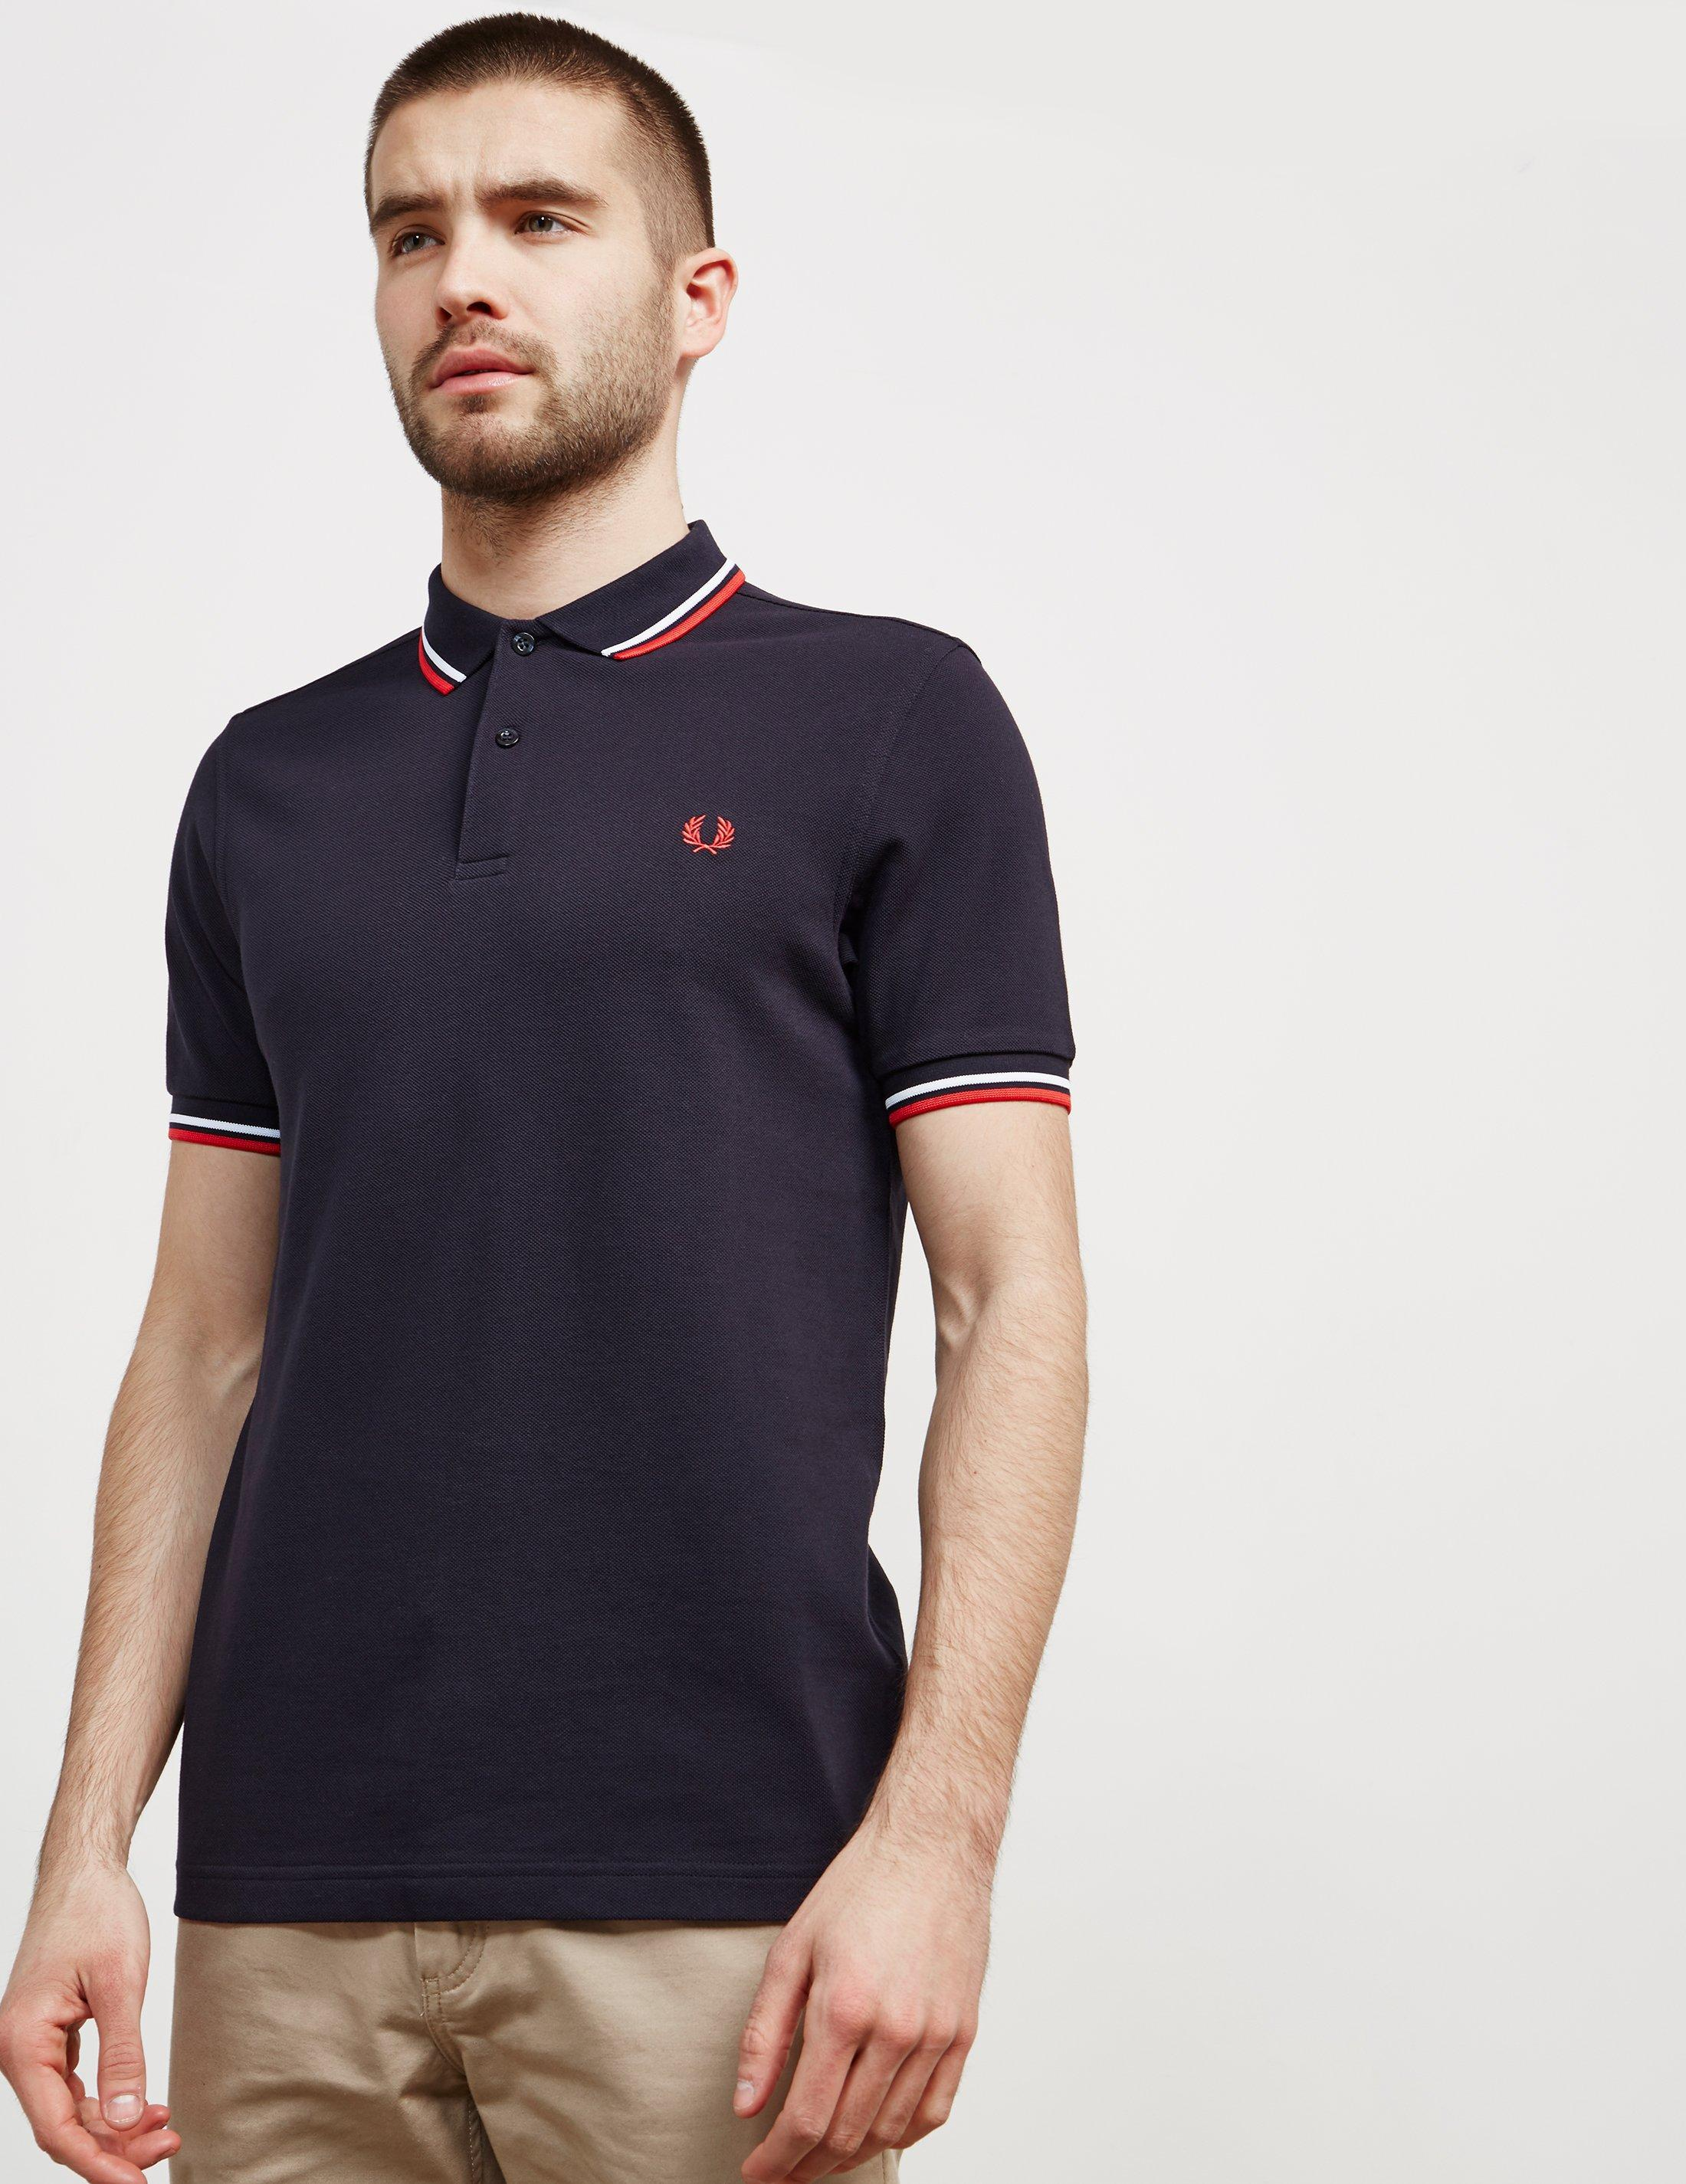 9ad25182d5b2 Fred Perry Twin Tipped Short Sleeve Polo Shirt Dark Navy/white/red ...